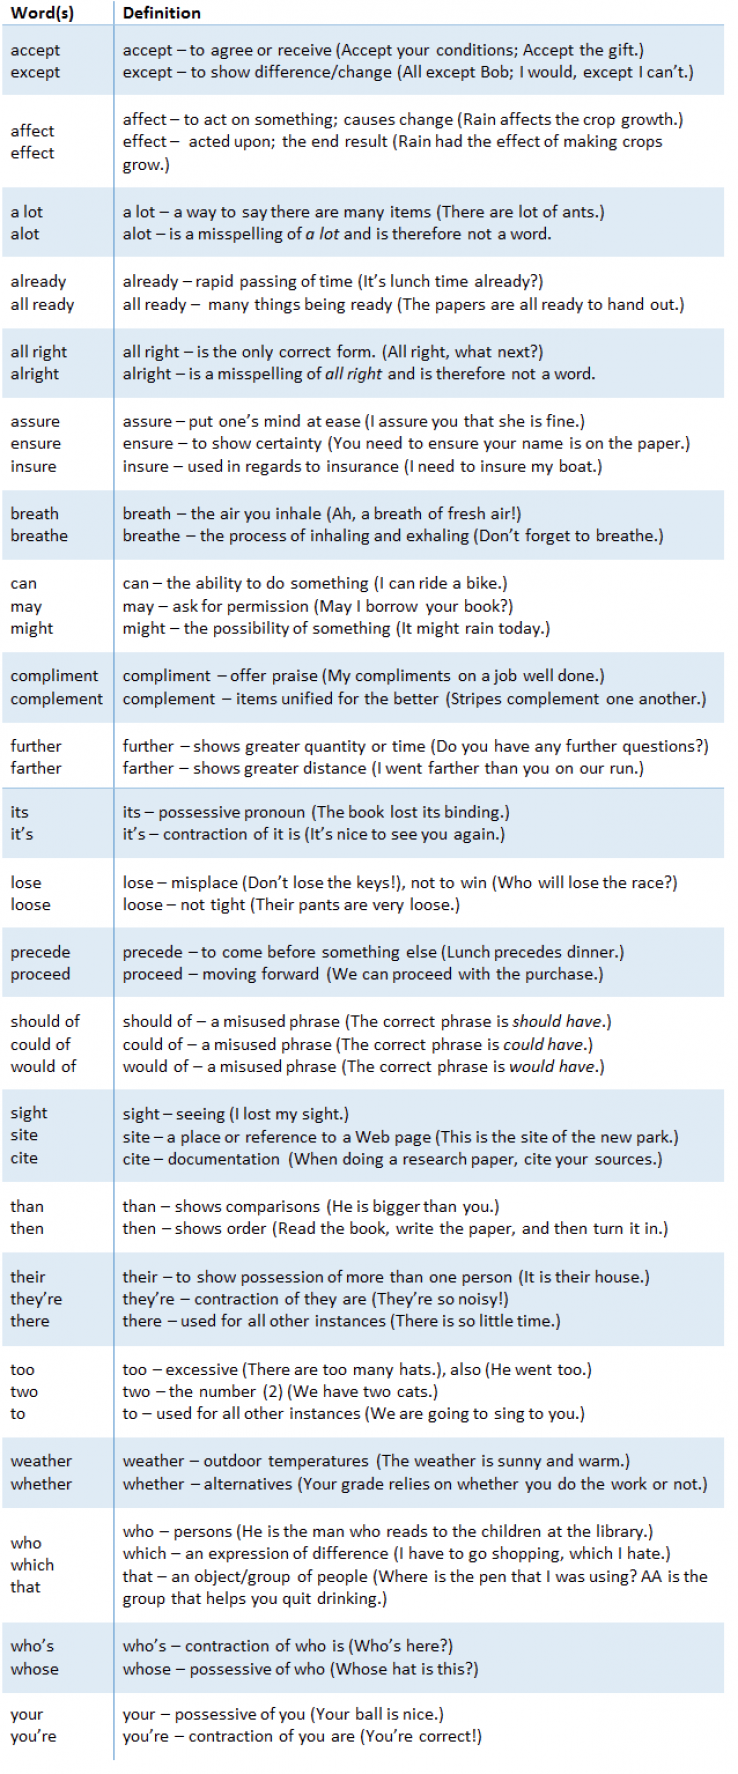 what are some of the most commonly misused words in the english language